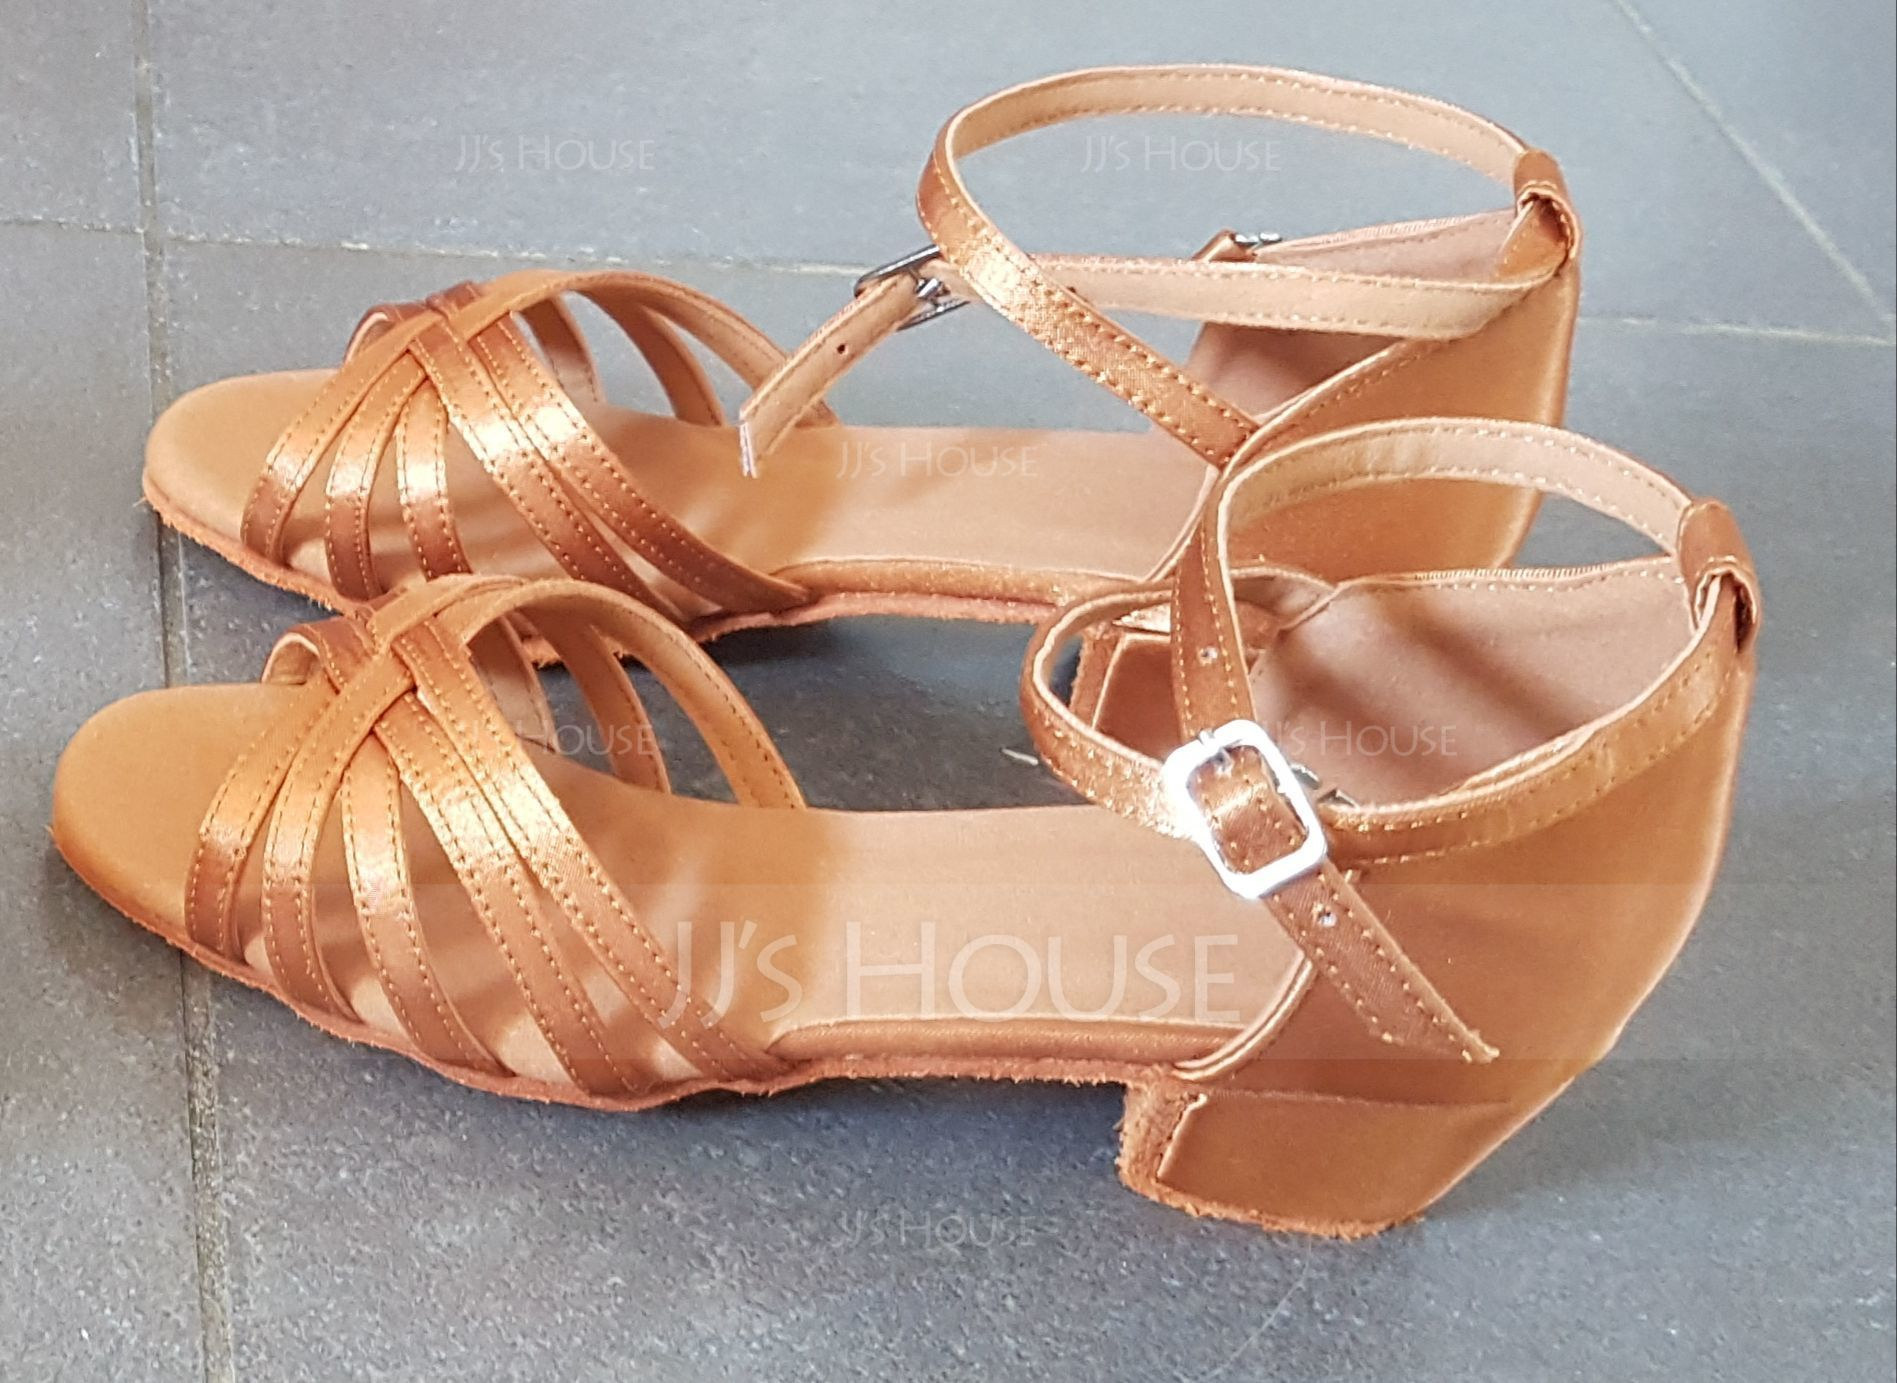 Kids' Satin Sandals Flats Latin With Ankle Strap Dance Shoes (053009738)